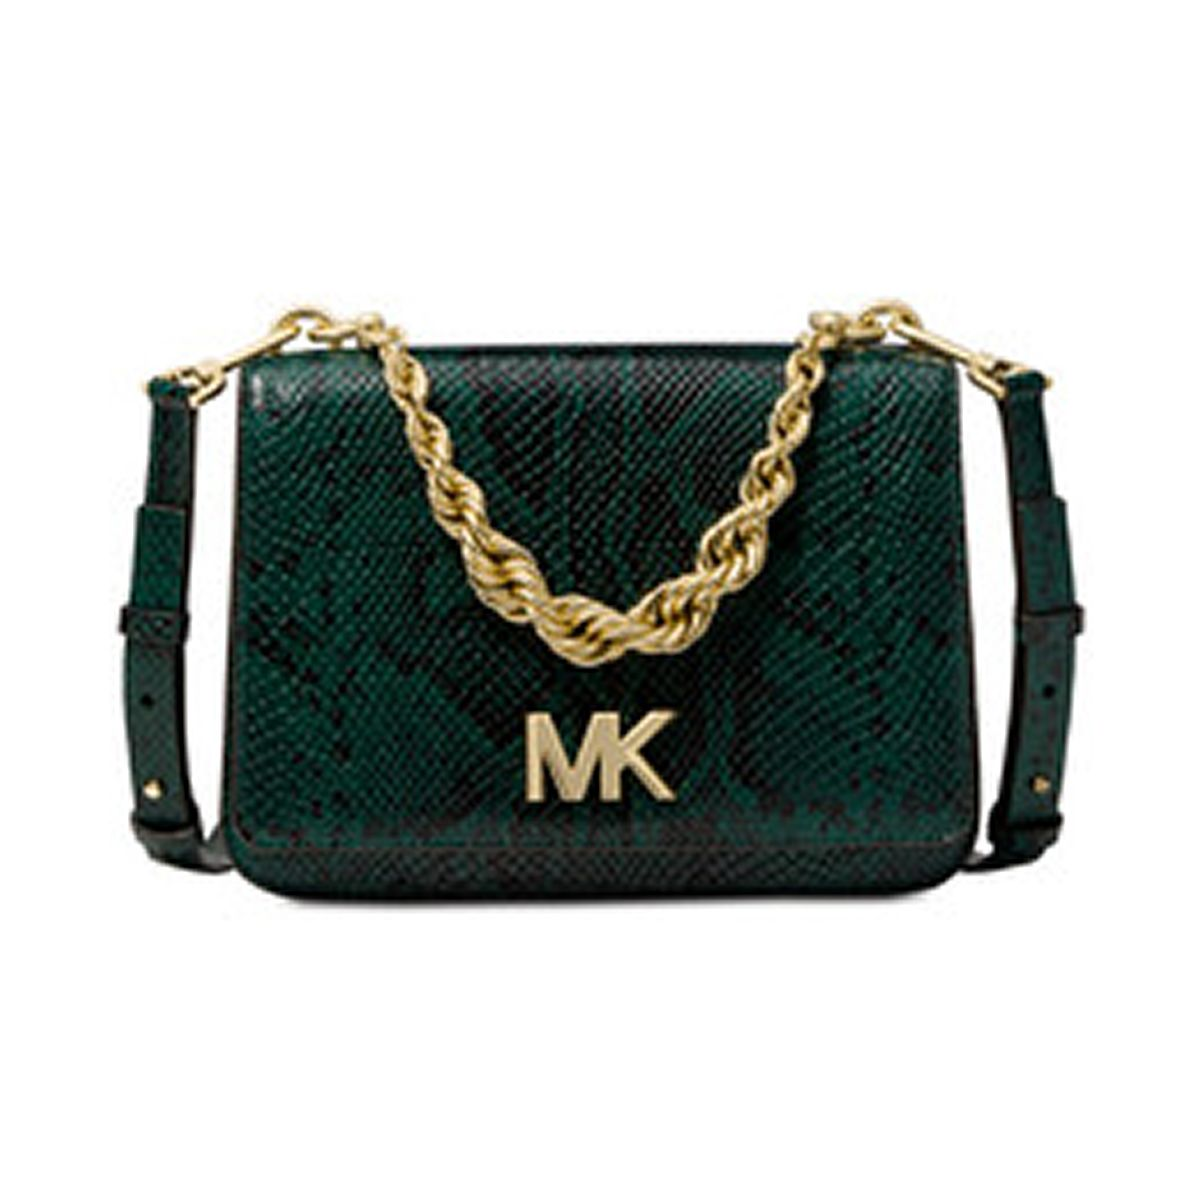 cd86cdeab795 Michael Kors Handbags - Macy s